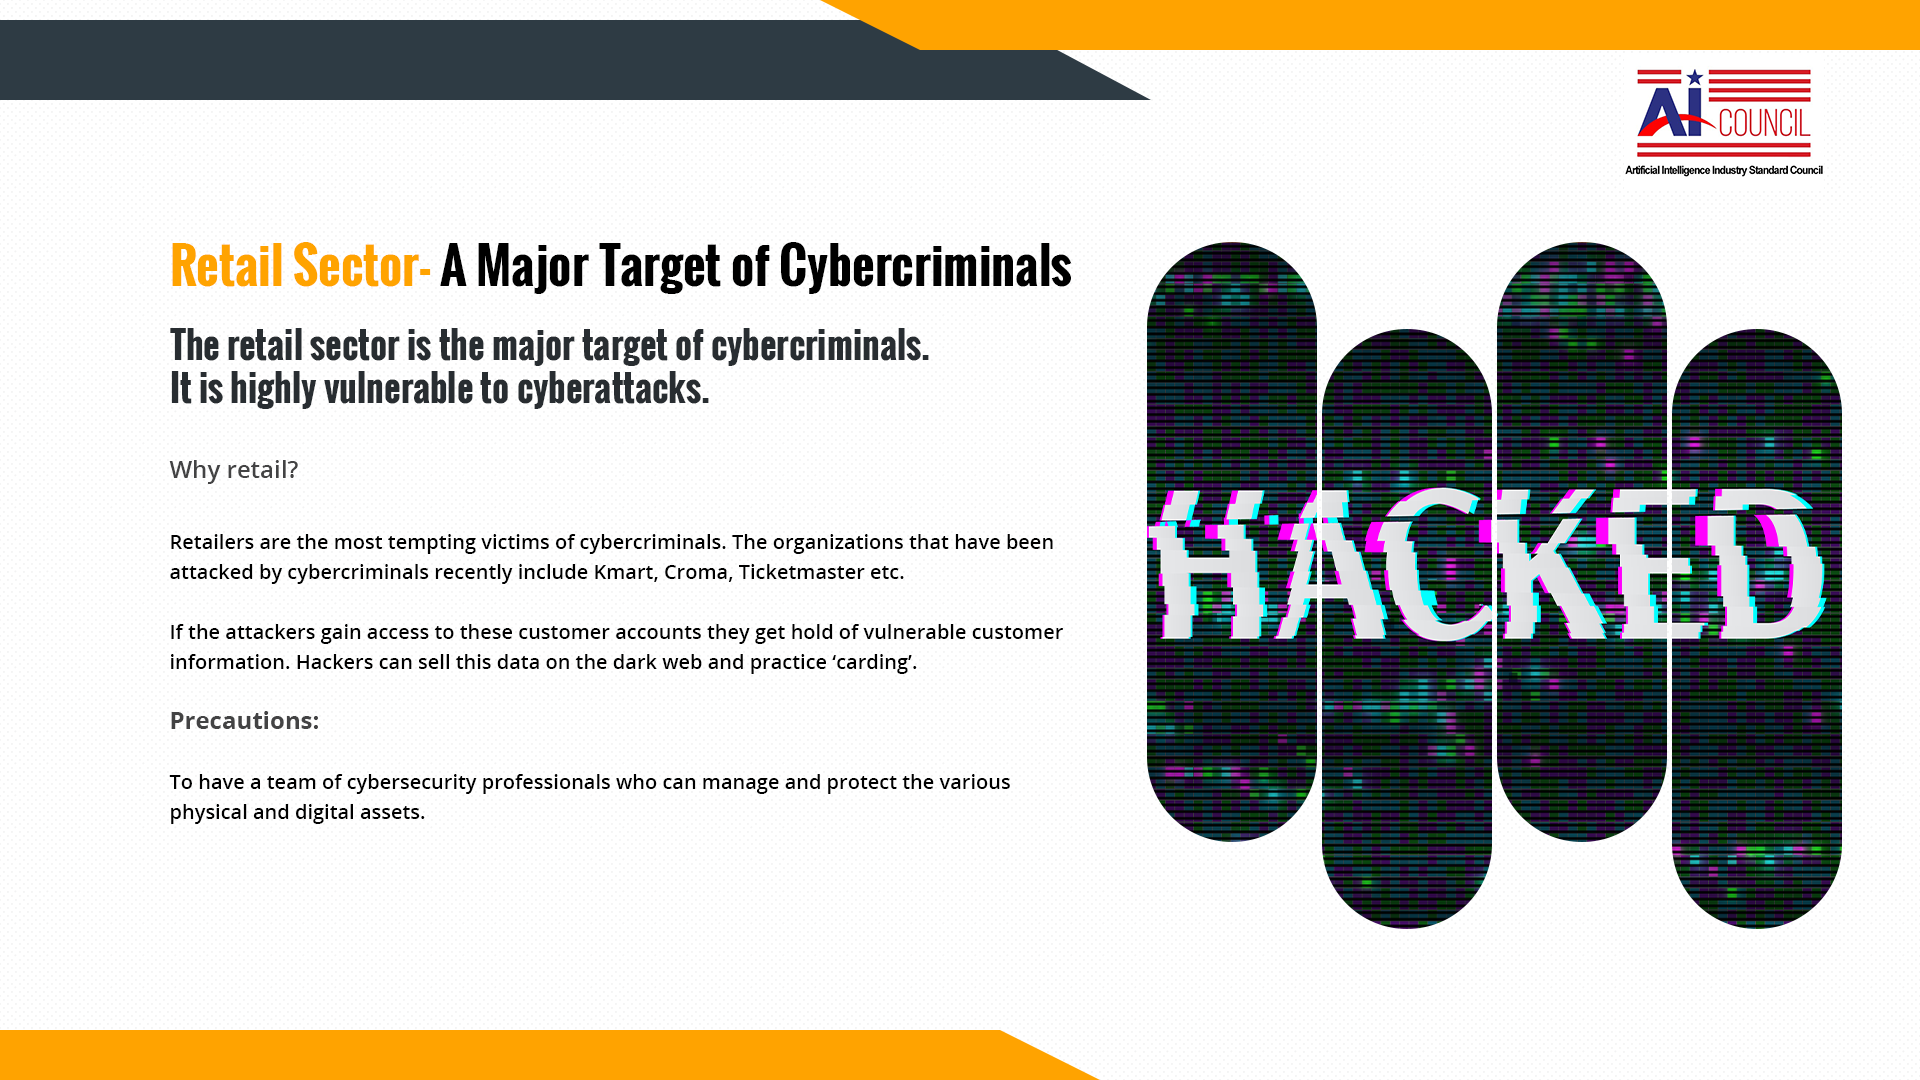 Retail Sector-A Major Target of Cybercriminals